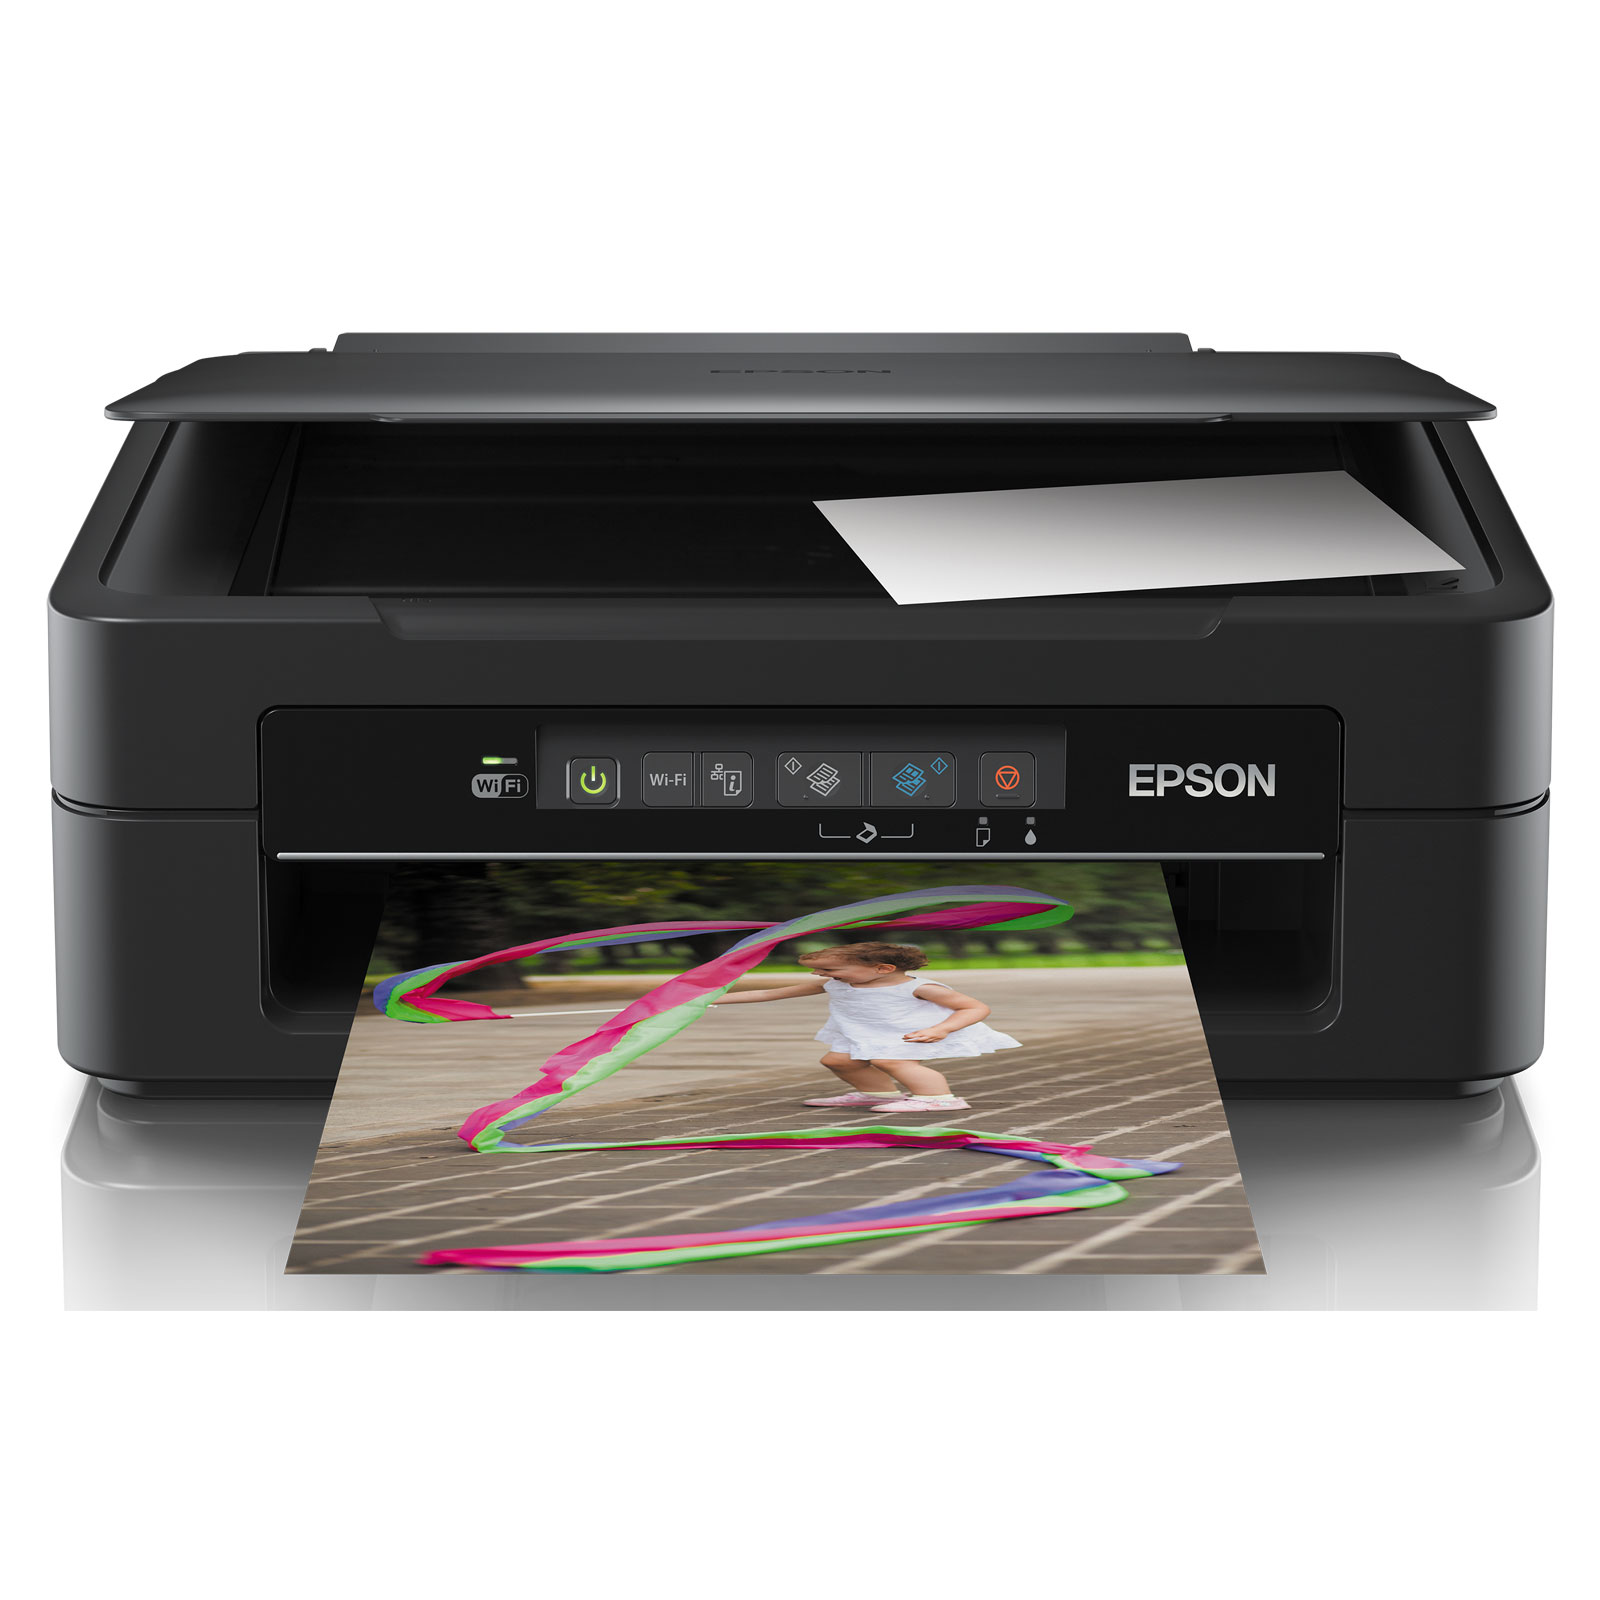 epson expression home xp 225 imprimante multifonction epson sur ldlc. Black Bedroom Furniture Sets. Home Design Ideas